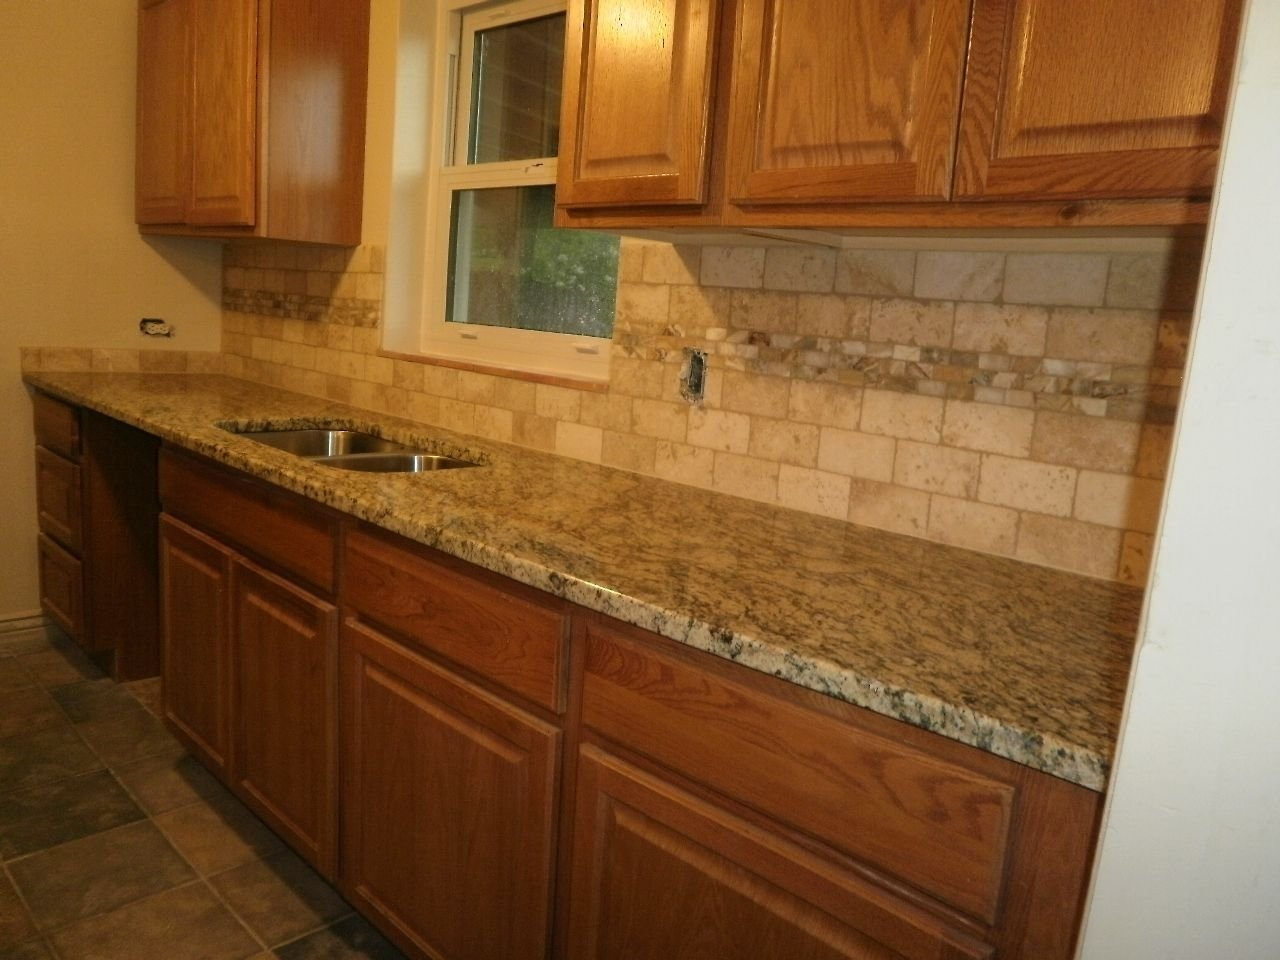 10 Great Backsplash Ideas For Kitchens With Granite Countertops kitchen backsplash ideas granite countertops backsplash ideas 2020